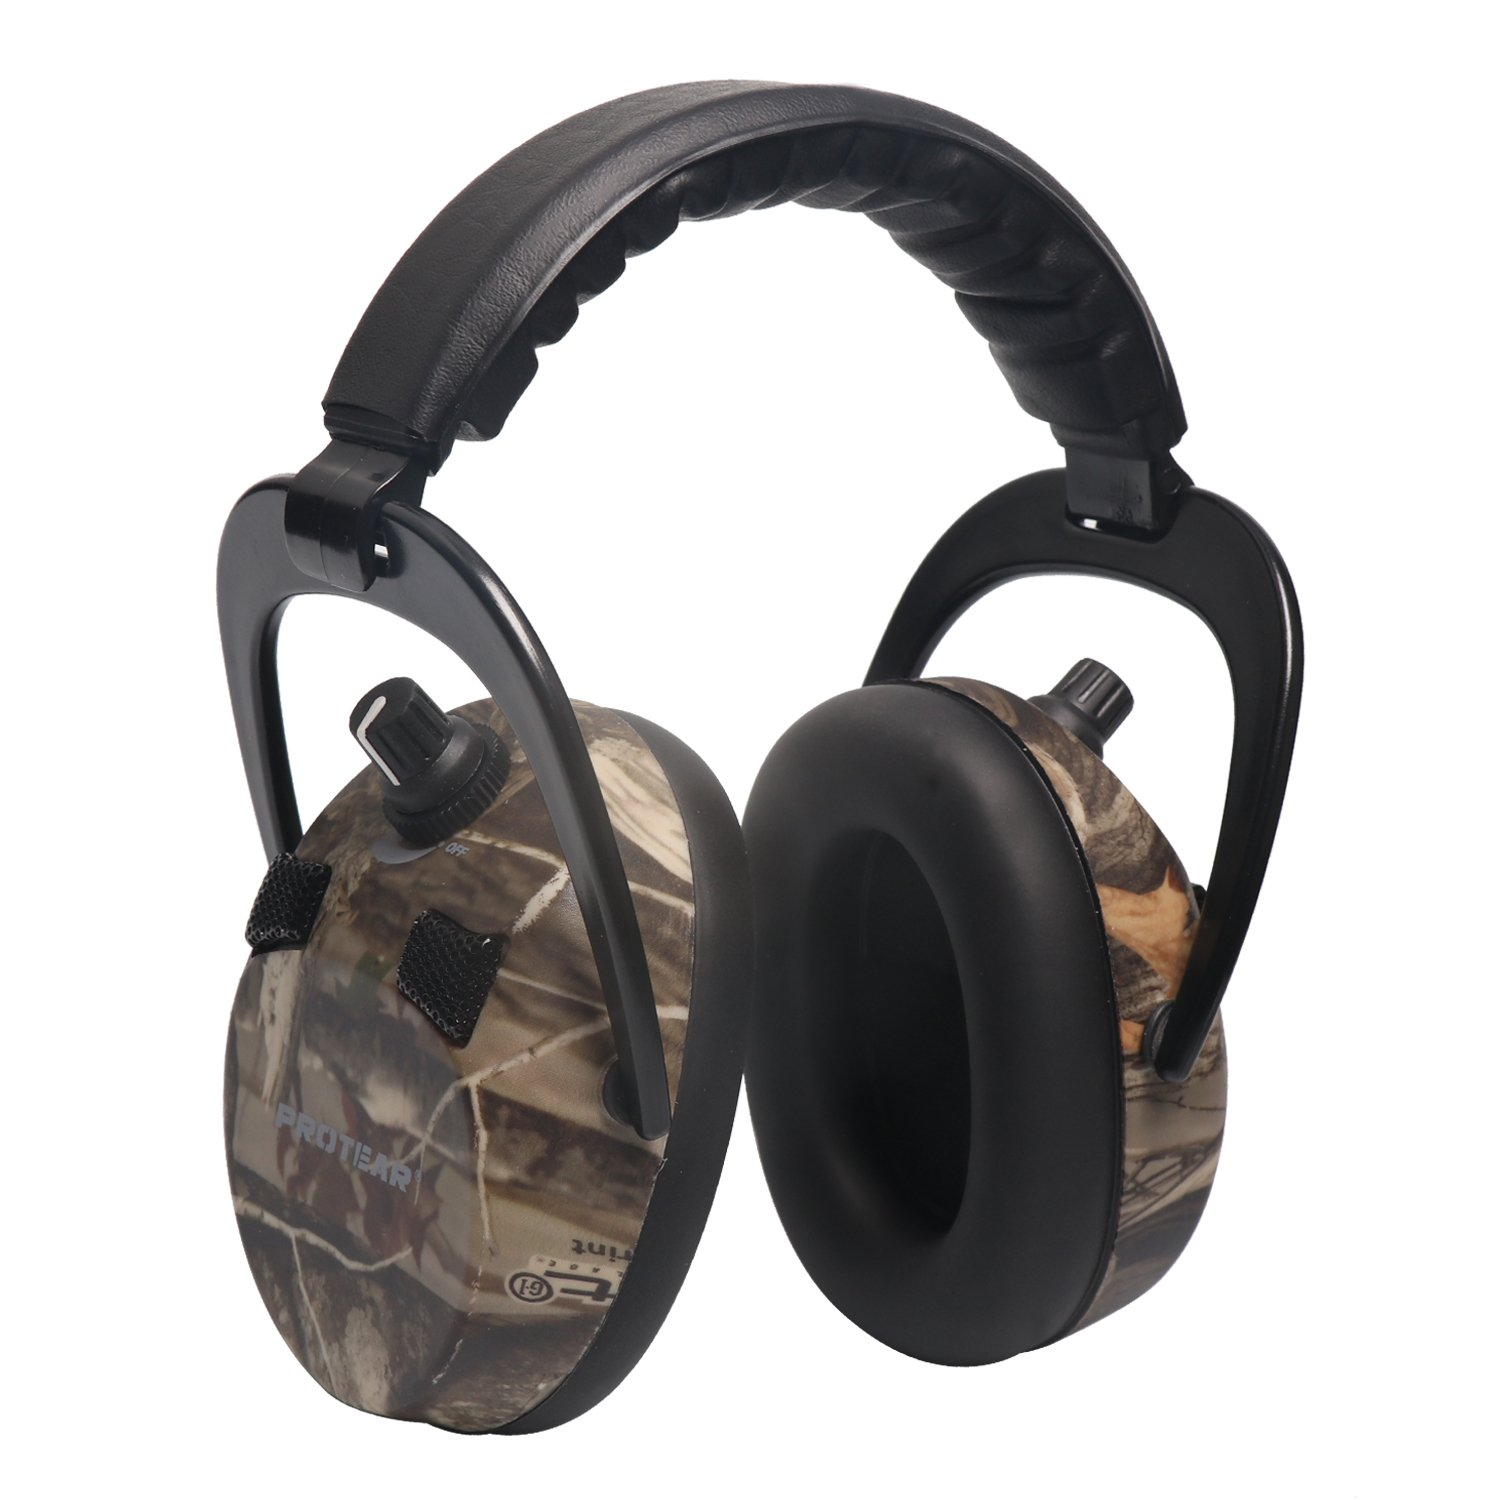 PROTEAR Electronic Ear Protection Sound Amplification Earmuff - NRR 23dB Hearing Protection Ear Muffs for Shooting/Hunting - Camouflage